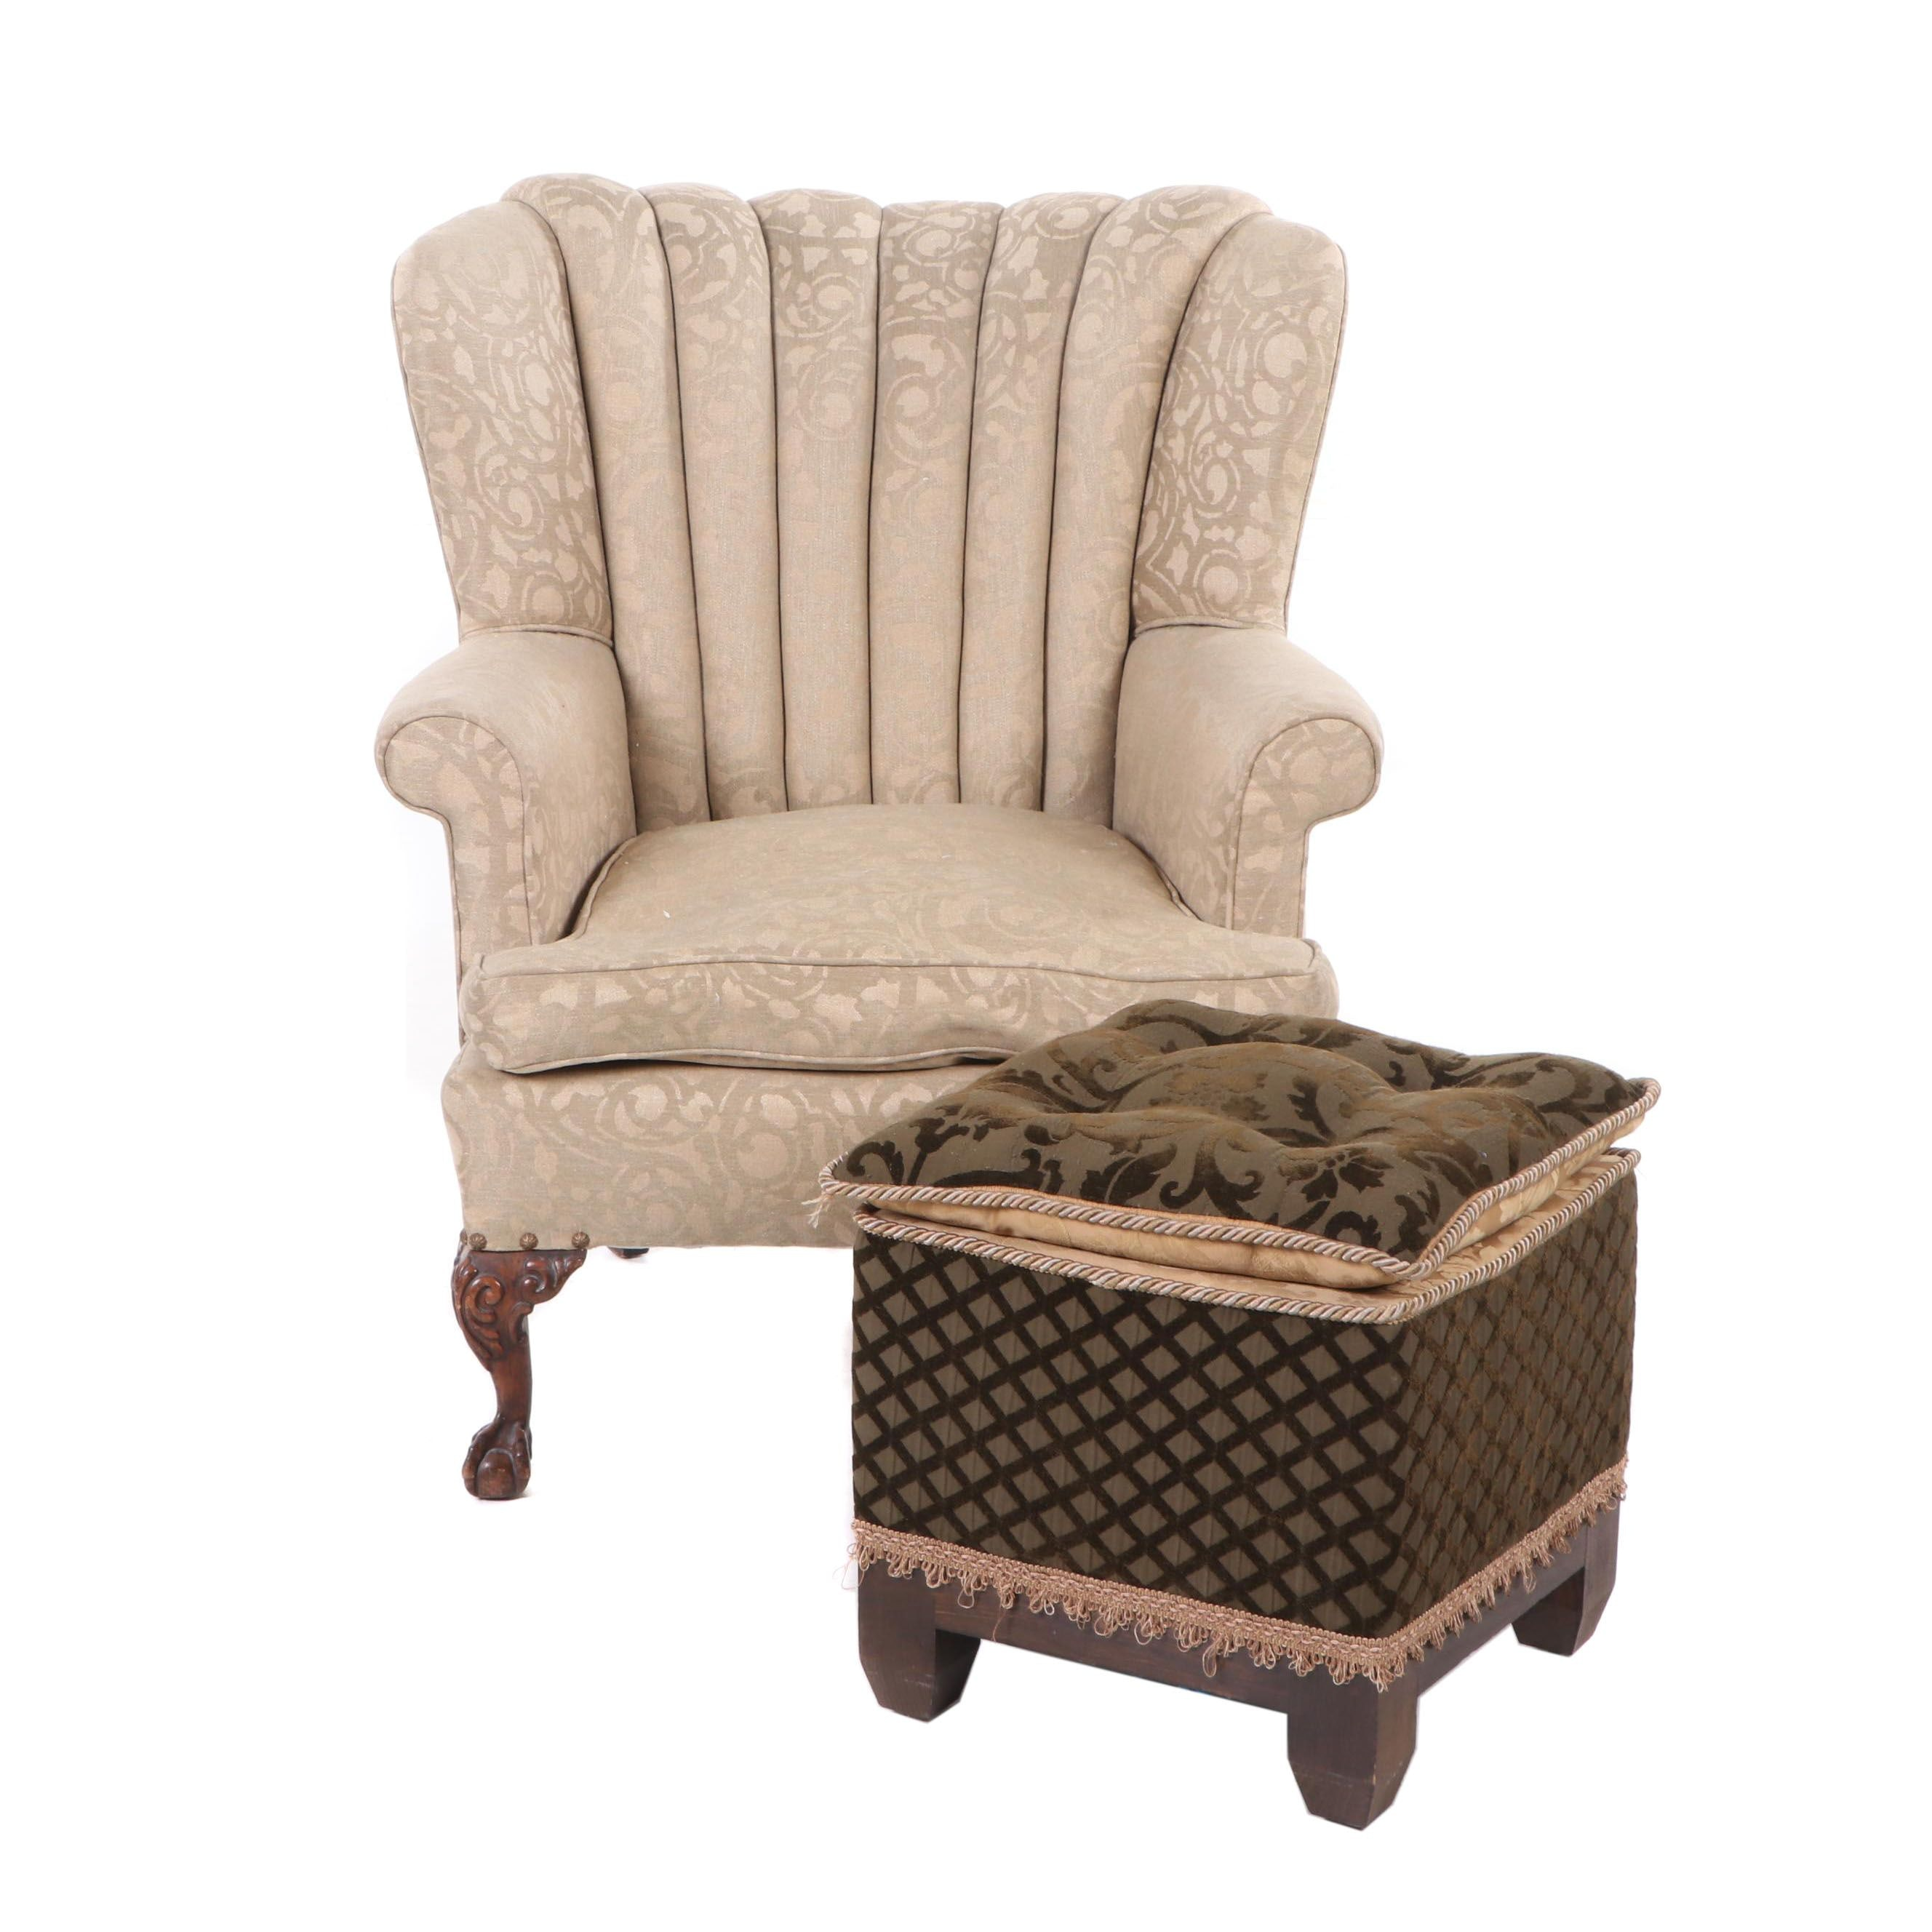 Upholstered Wingback Armchair with Ottoman, Mid 20th Century